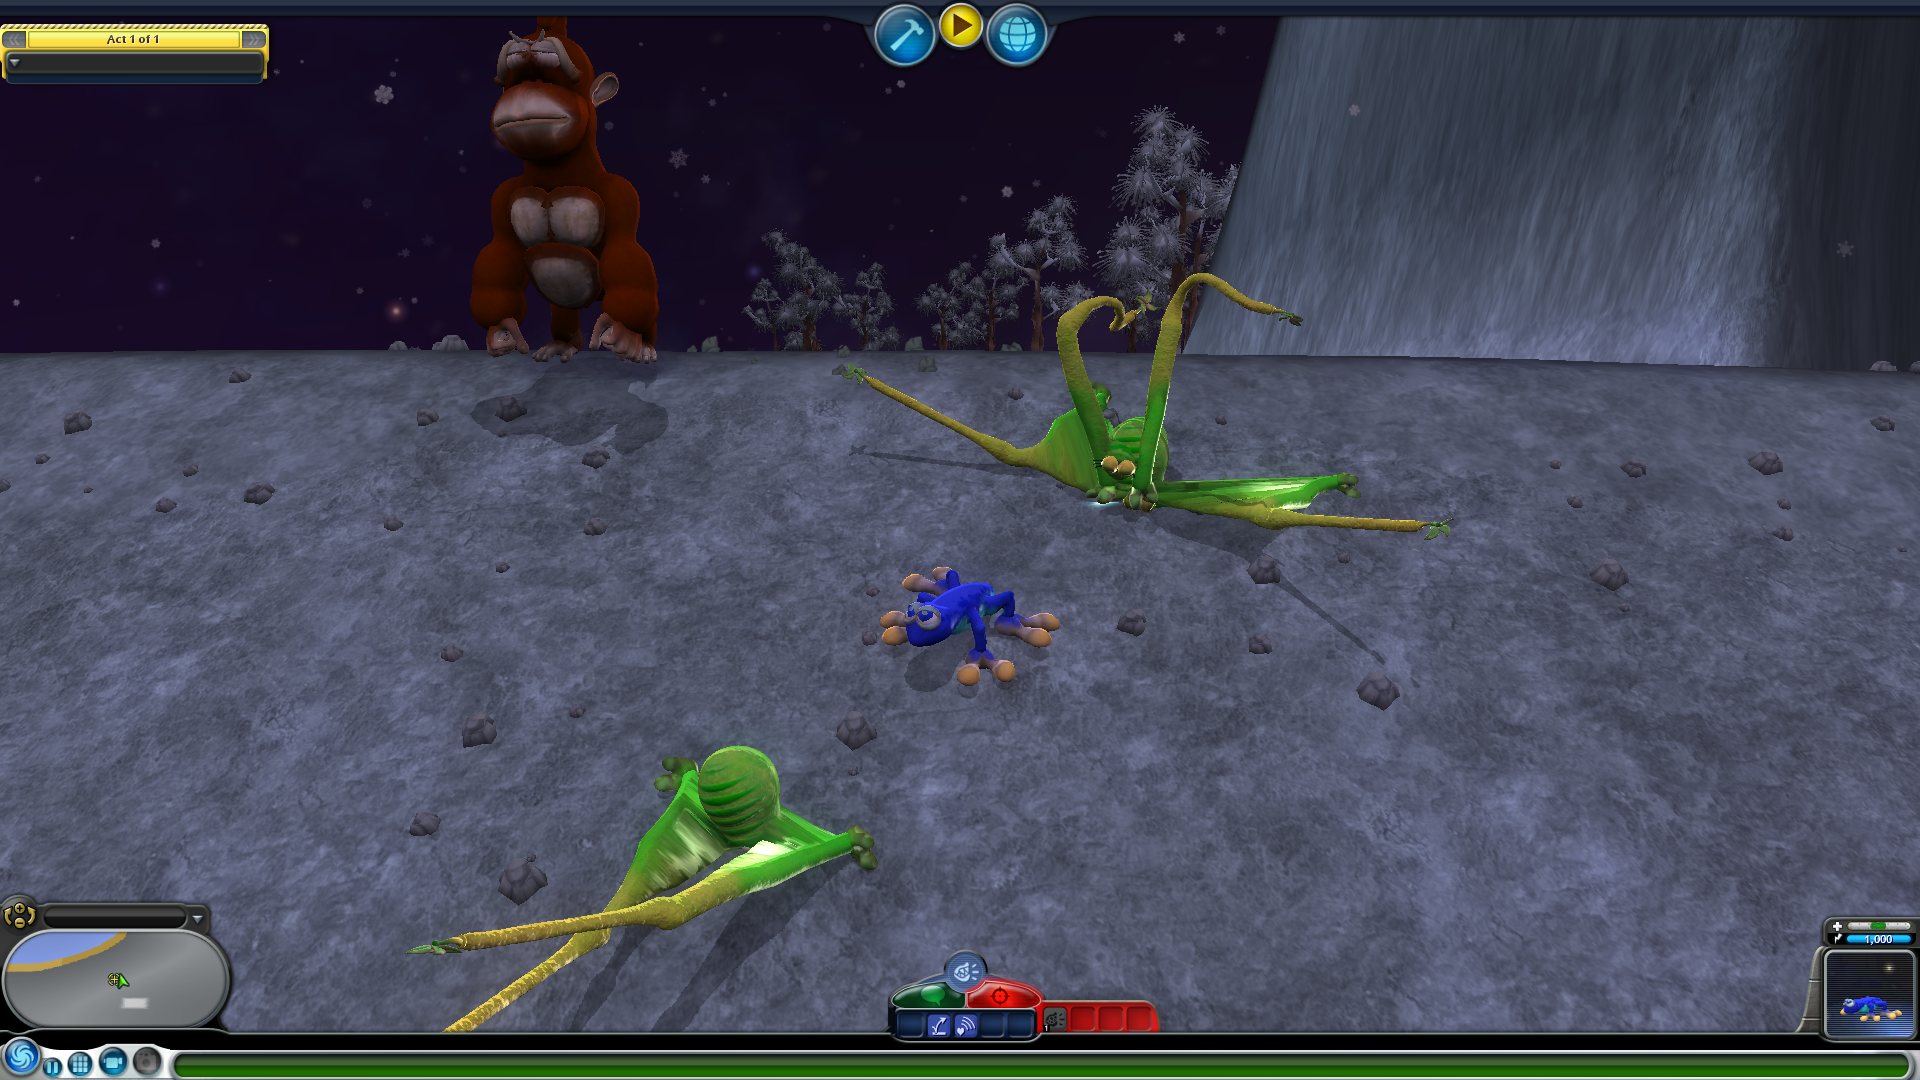 Spore_2020-03-01_15-07-51.png